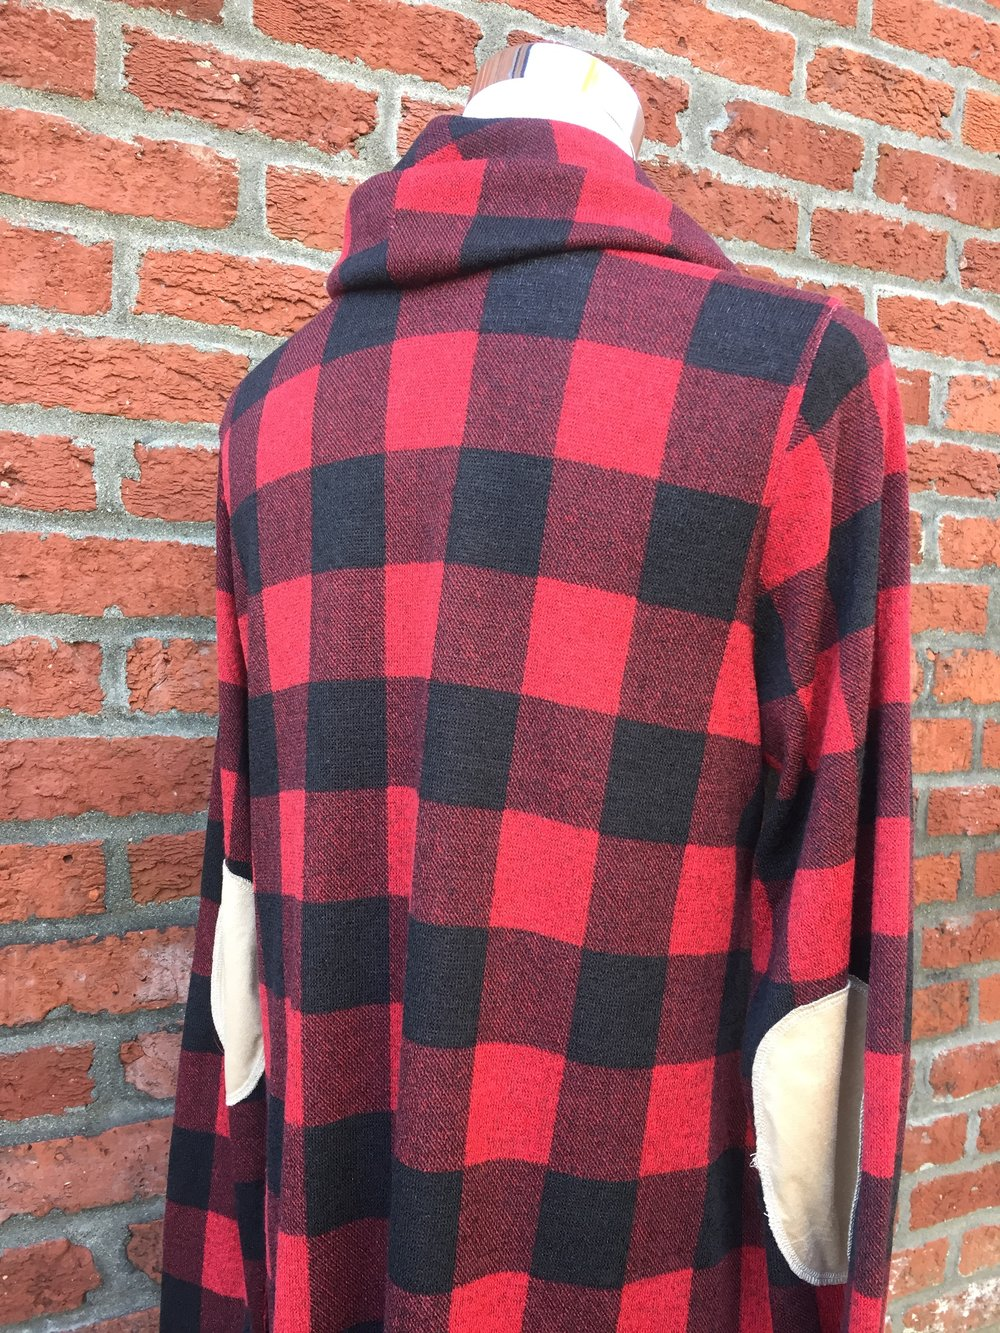 Plaid Dress w/ Elbow Patch ($38)